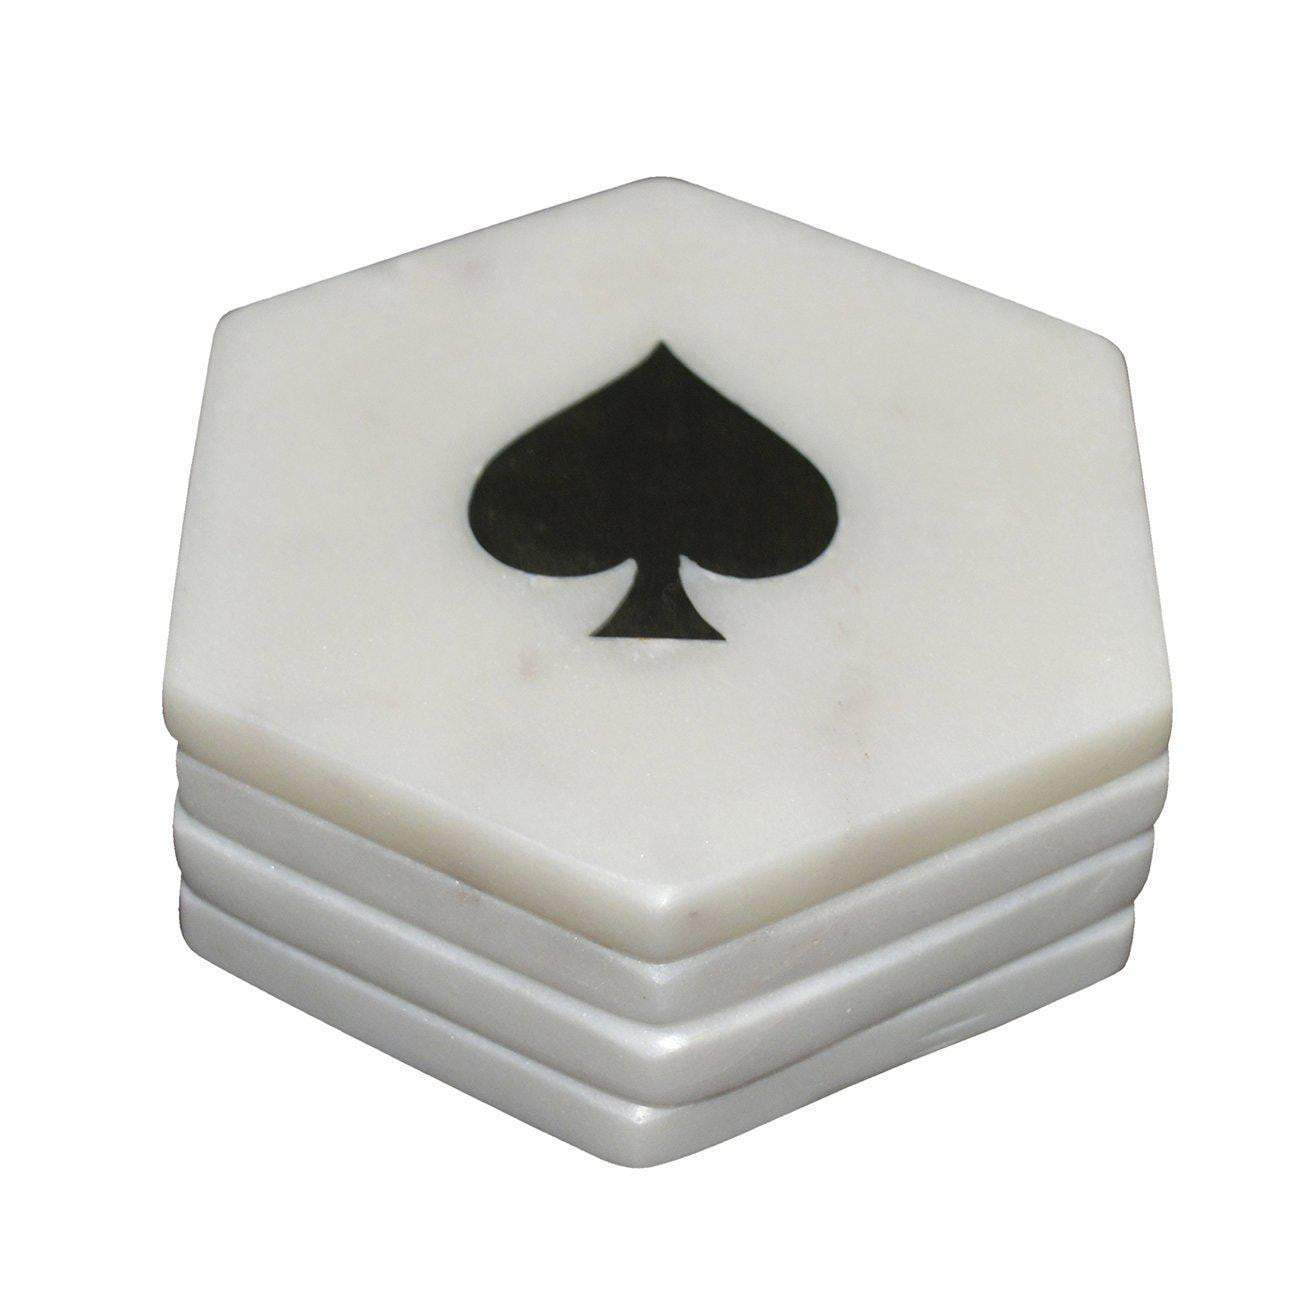 Banswara Hexa Marble Coasters With Brass Inlay 'Clubs' - Parker Gwen